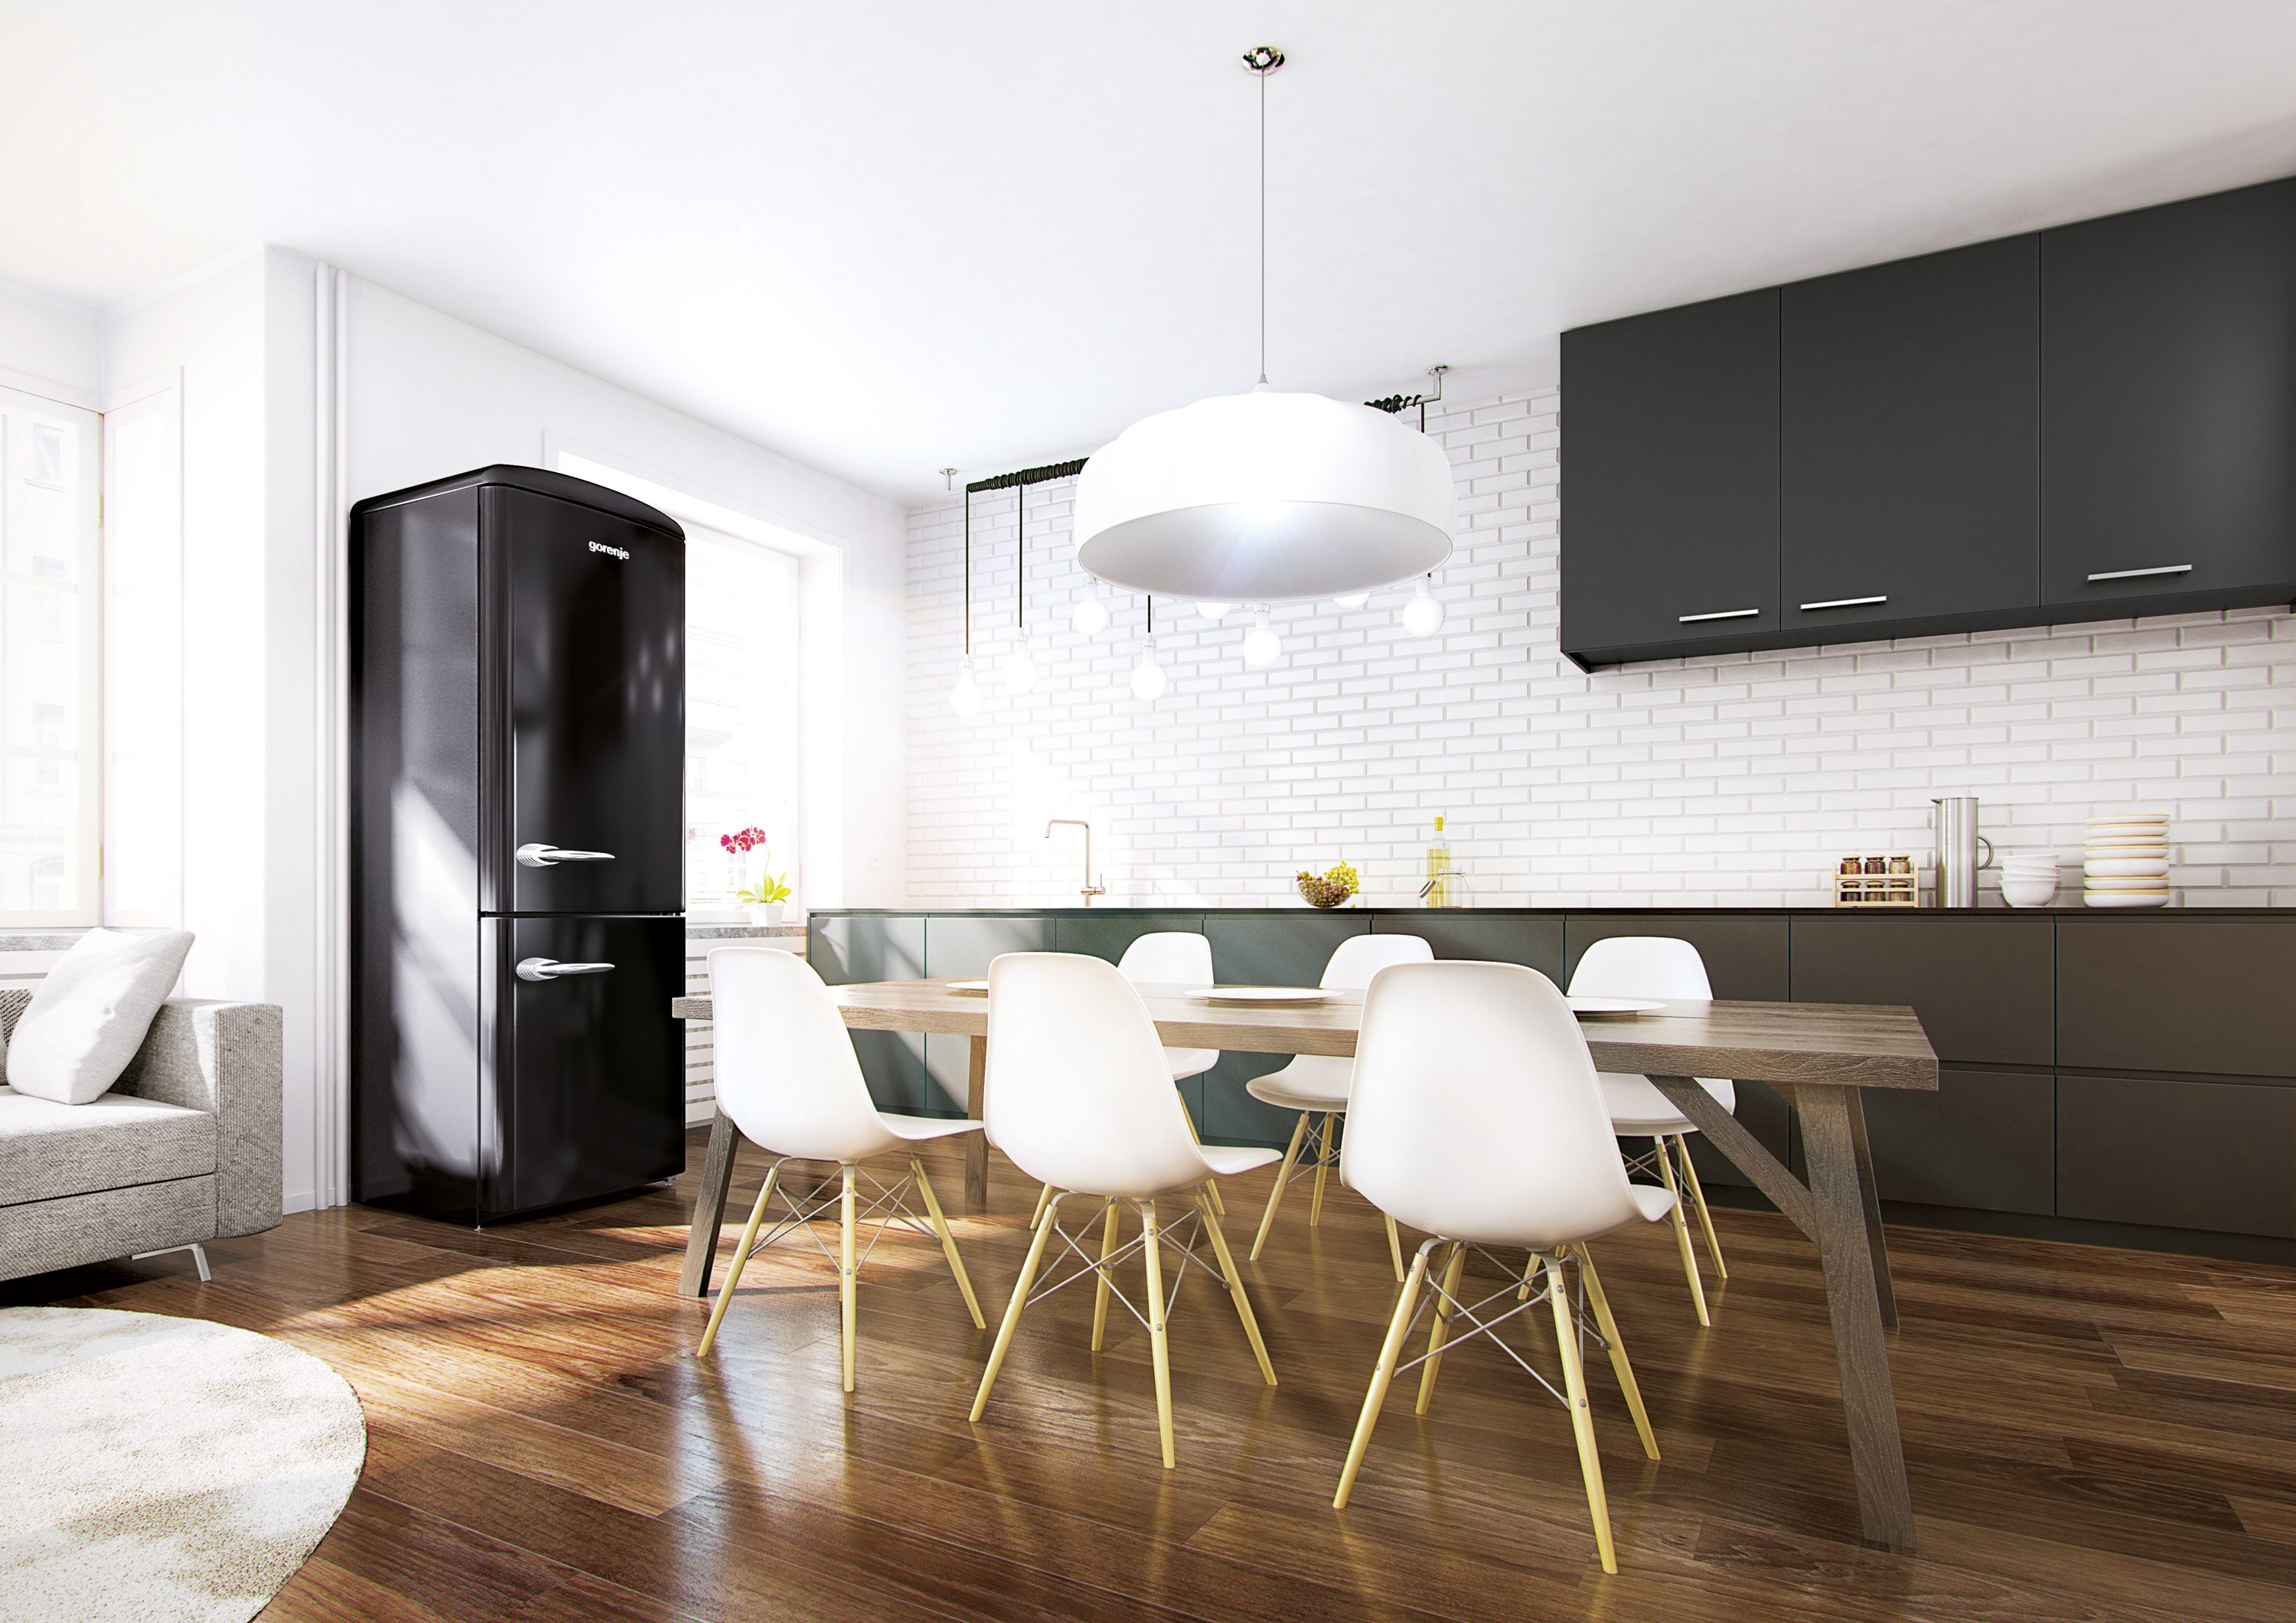 gorenje retro collection gorenje. Black Bedroom Furniture Sets. Home Design Ideas